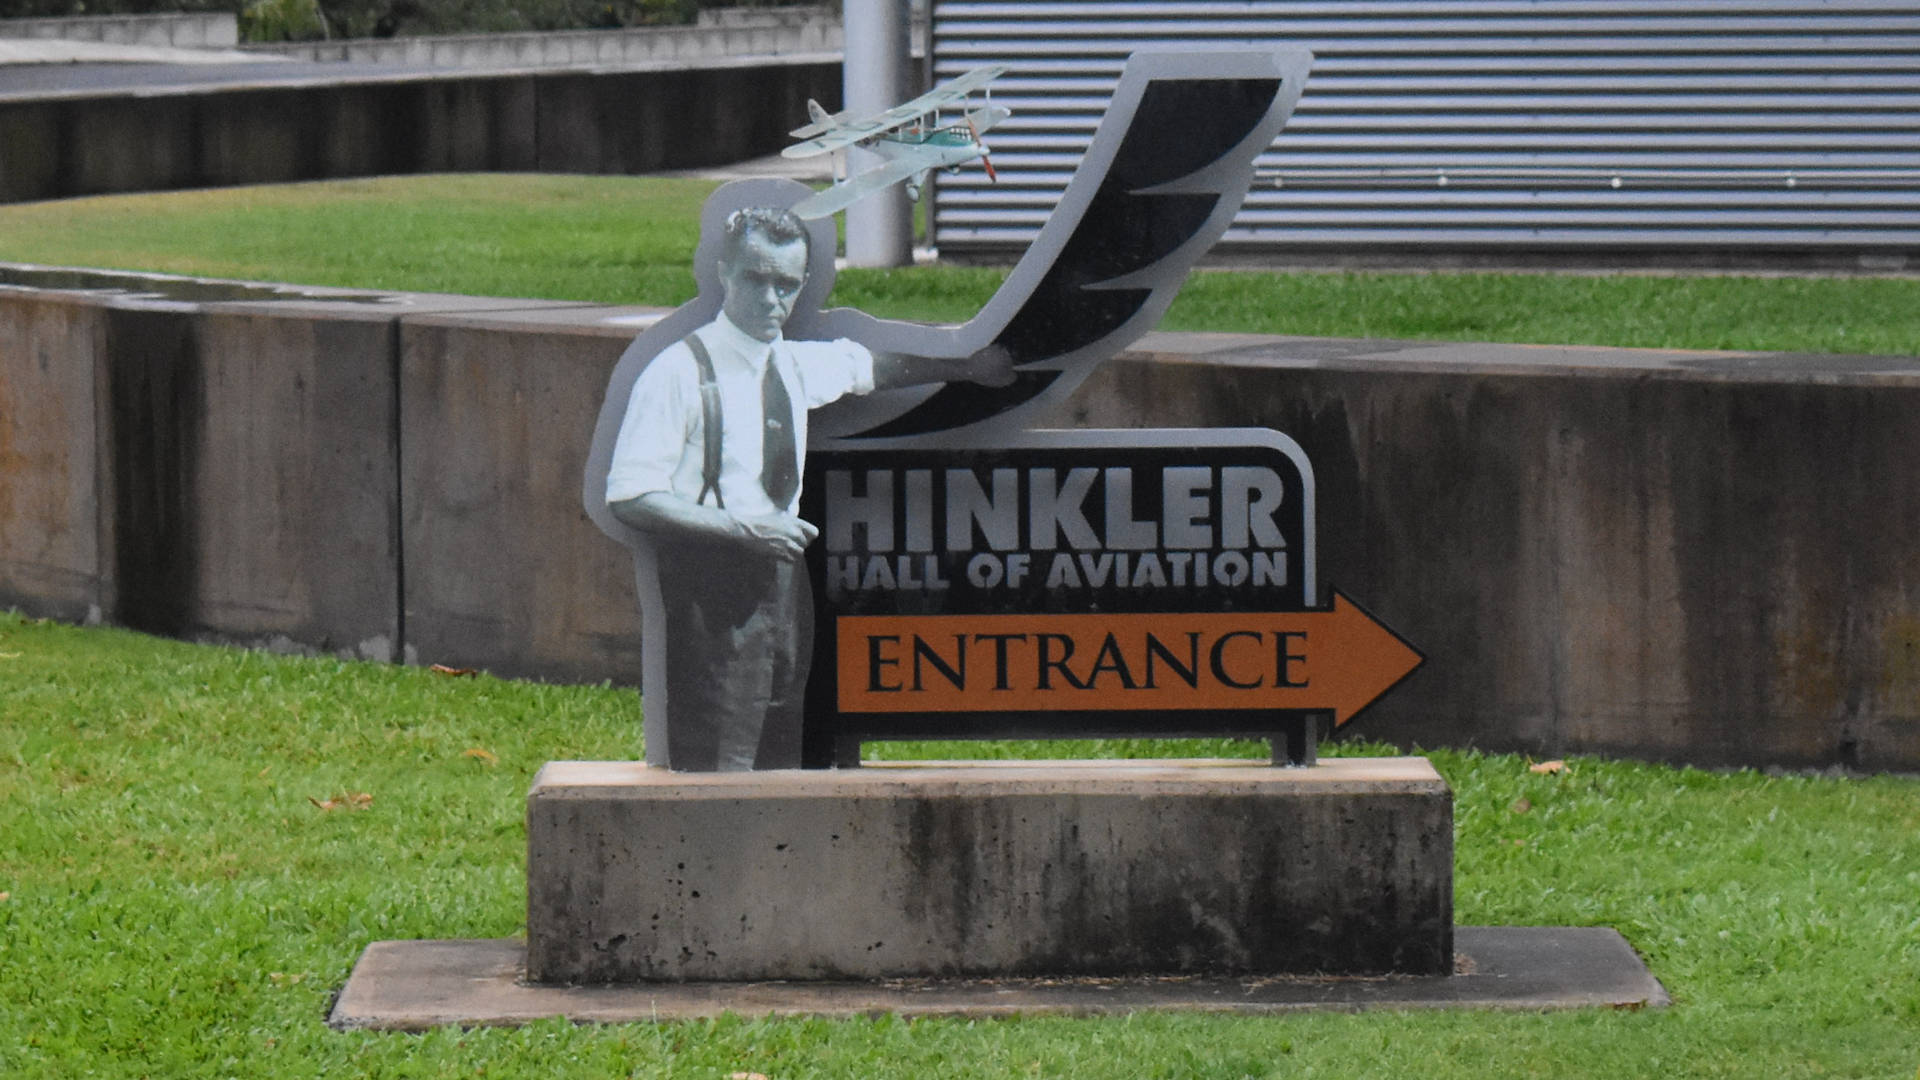 Signage for the entrance to Hinkler Hall of Aviation, with an image of Hinkler and his first aircraft